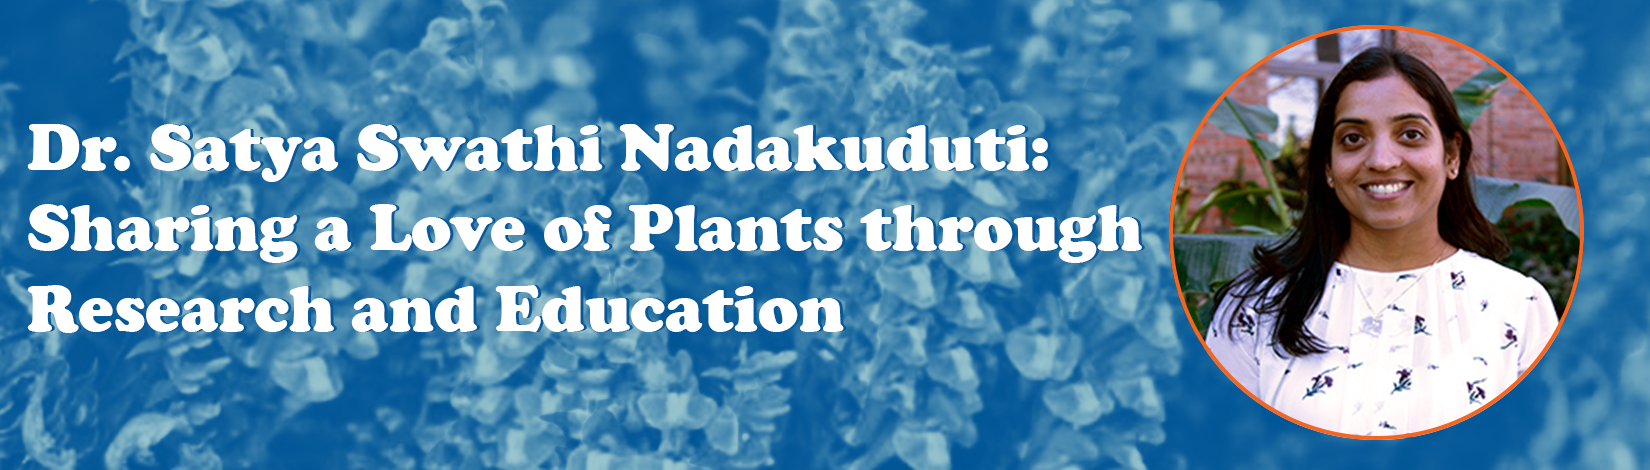 Dr. Satya Swathi Nadakuduti: Sharing a Love of Plants through Research and Education